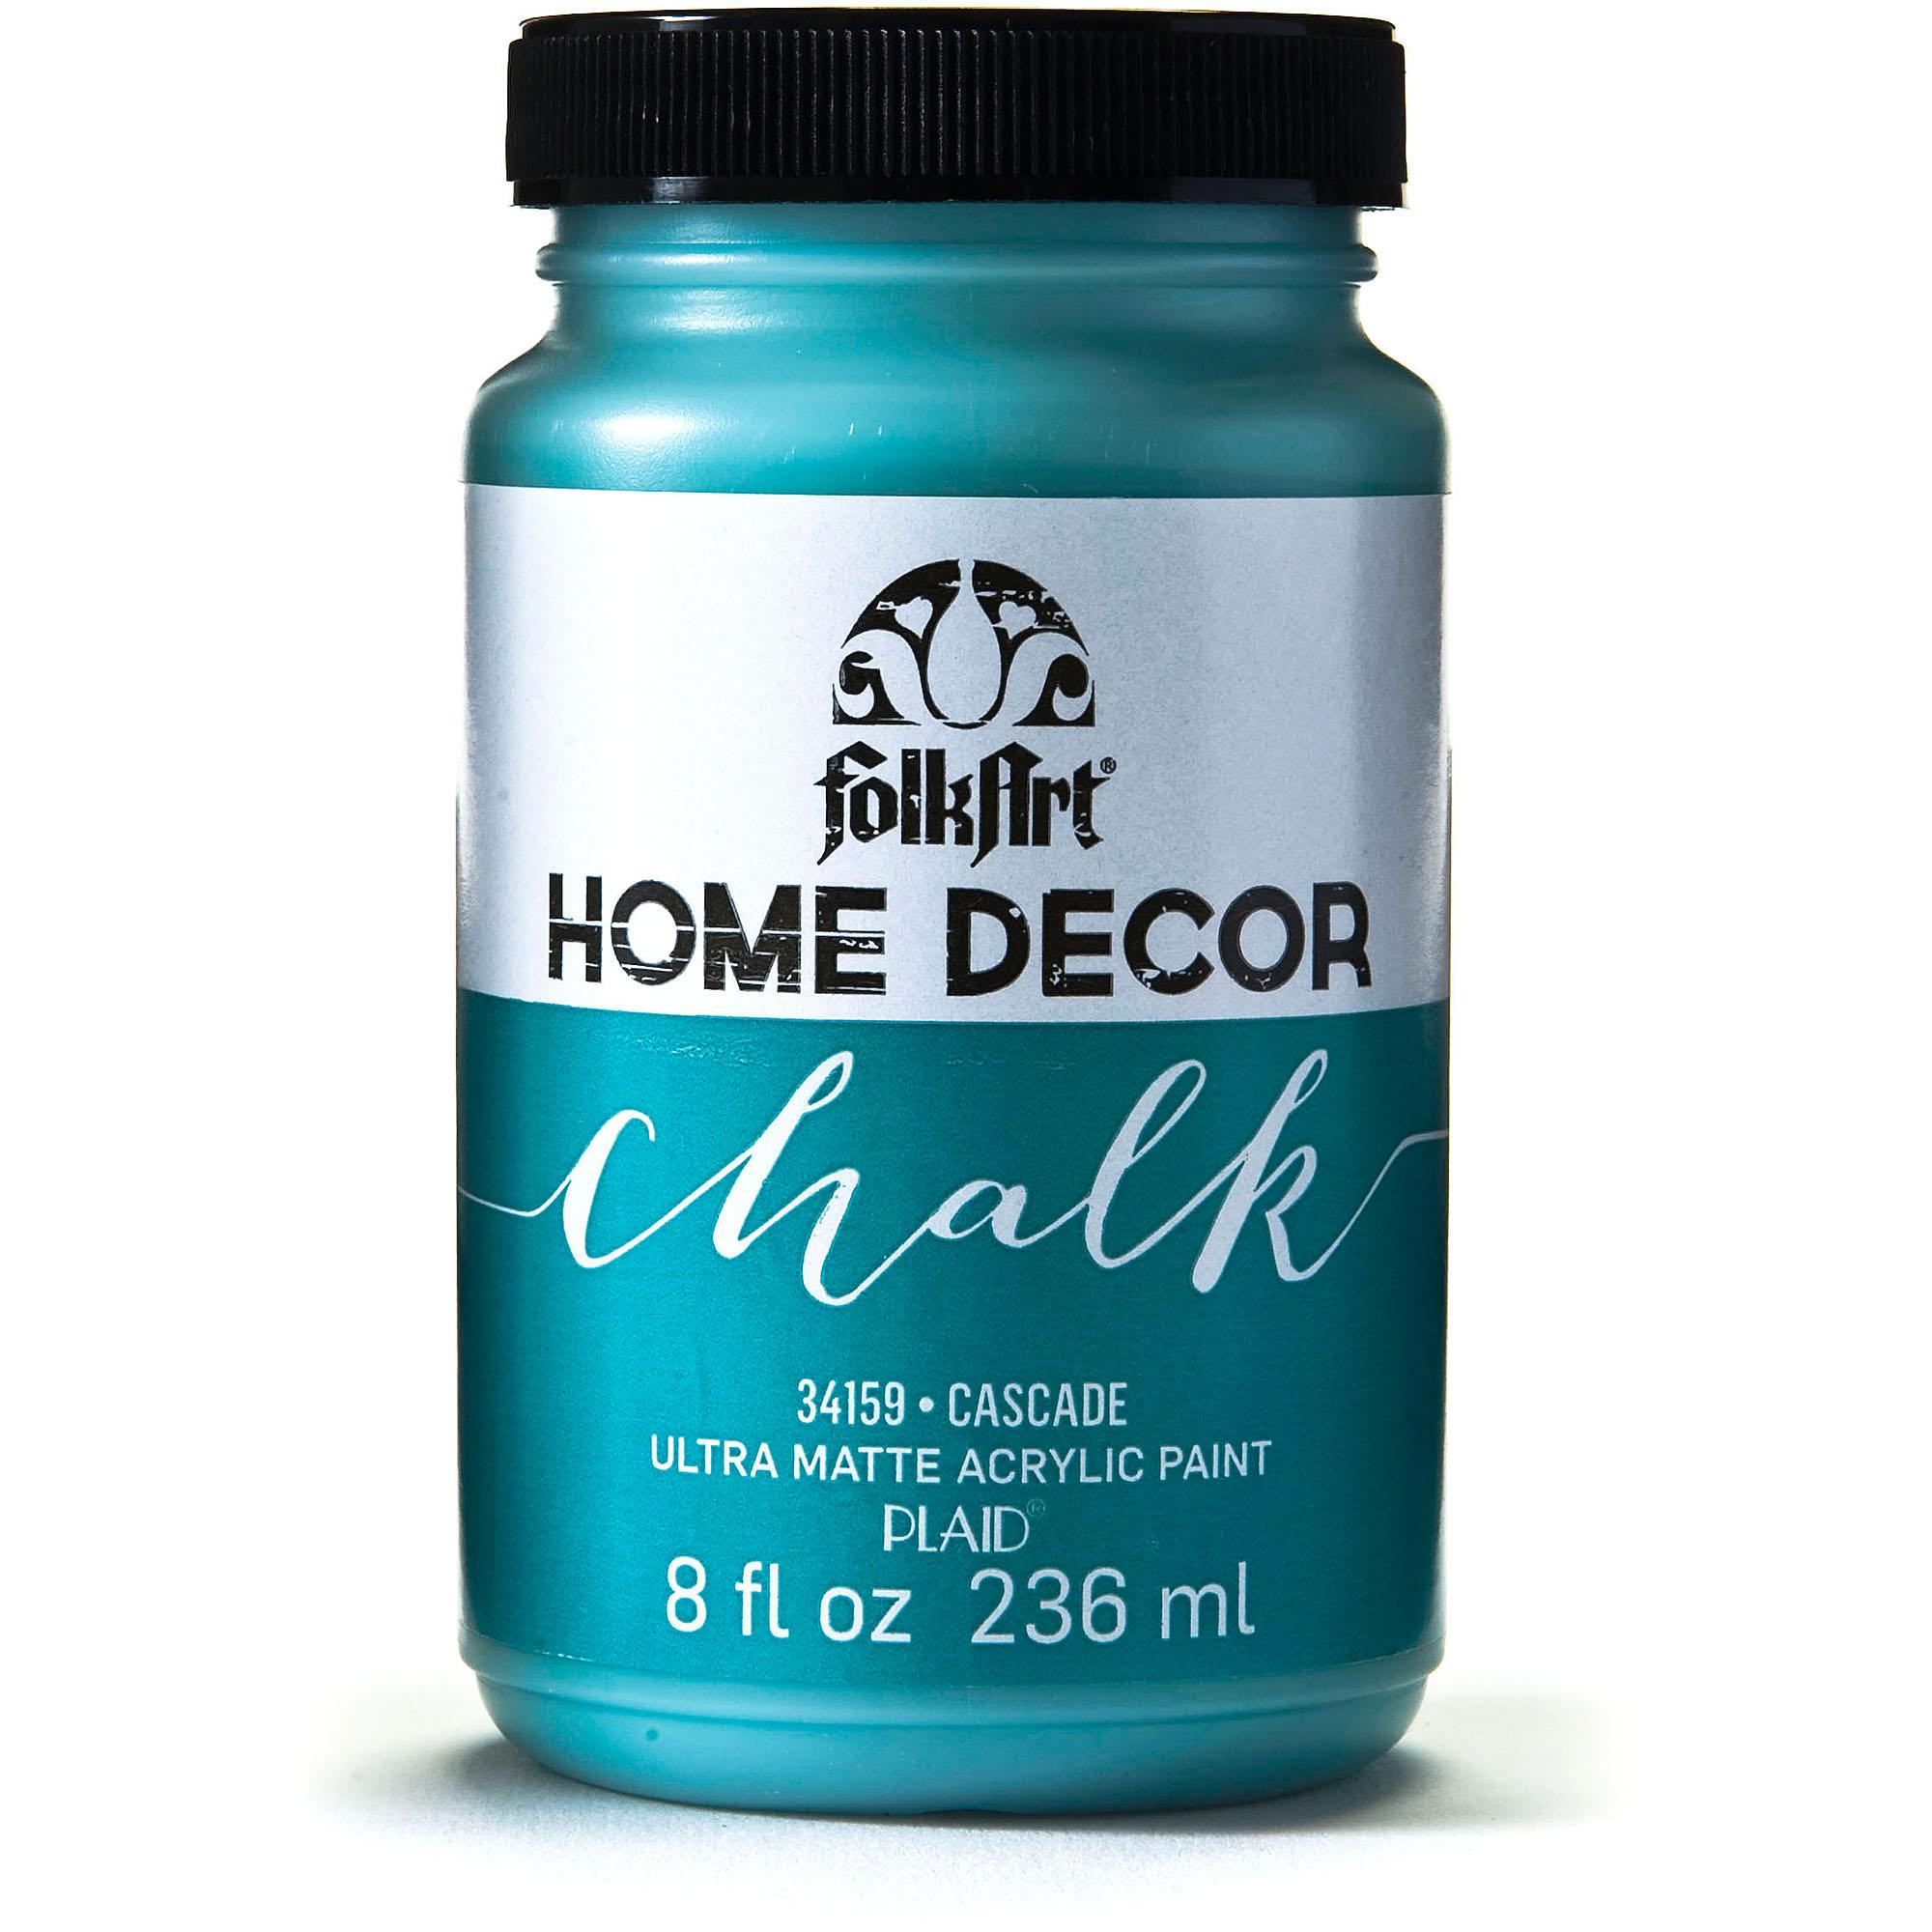 FolkArt   Home Decor Ultra Matte Finish Chalk Acrylic Paint Colors by Plaid - Cascade,   8 oz.